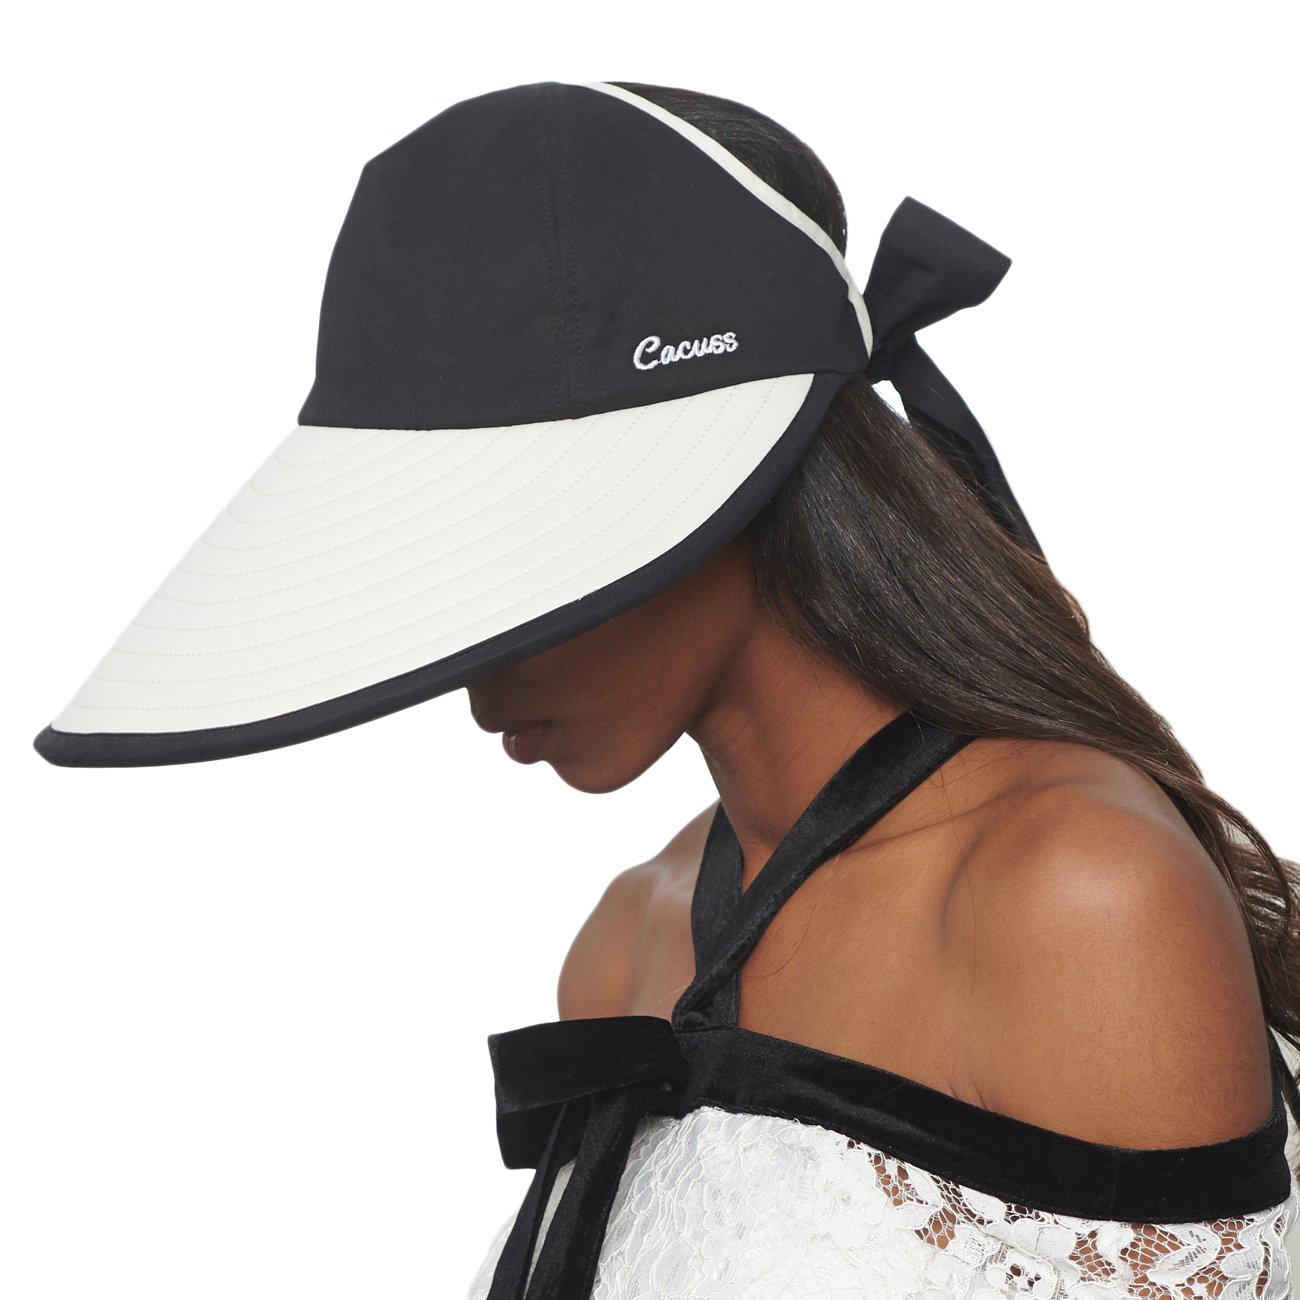 CACUSS Women's Summer Sun Hat Large Brim Visor with Bowknot Adjustable UPF 50+